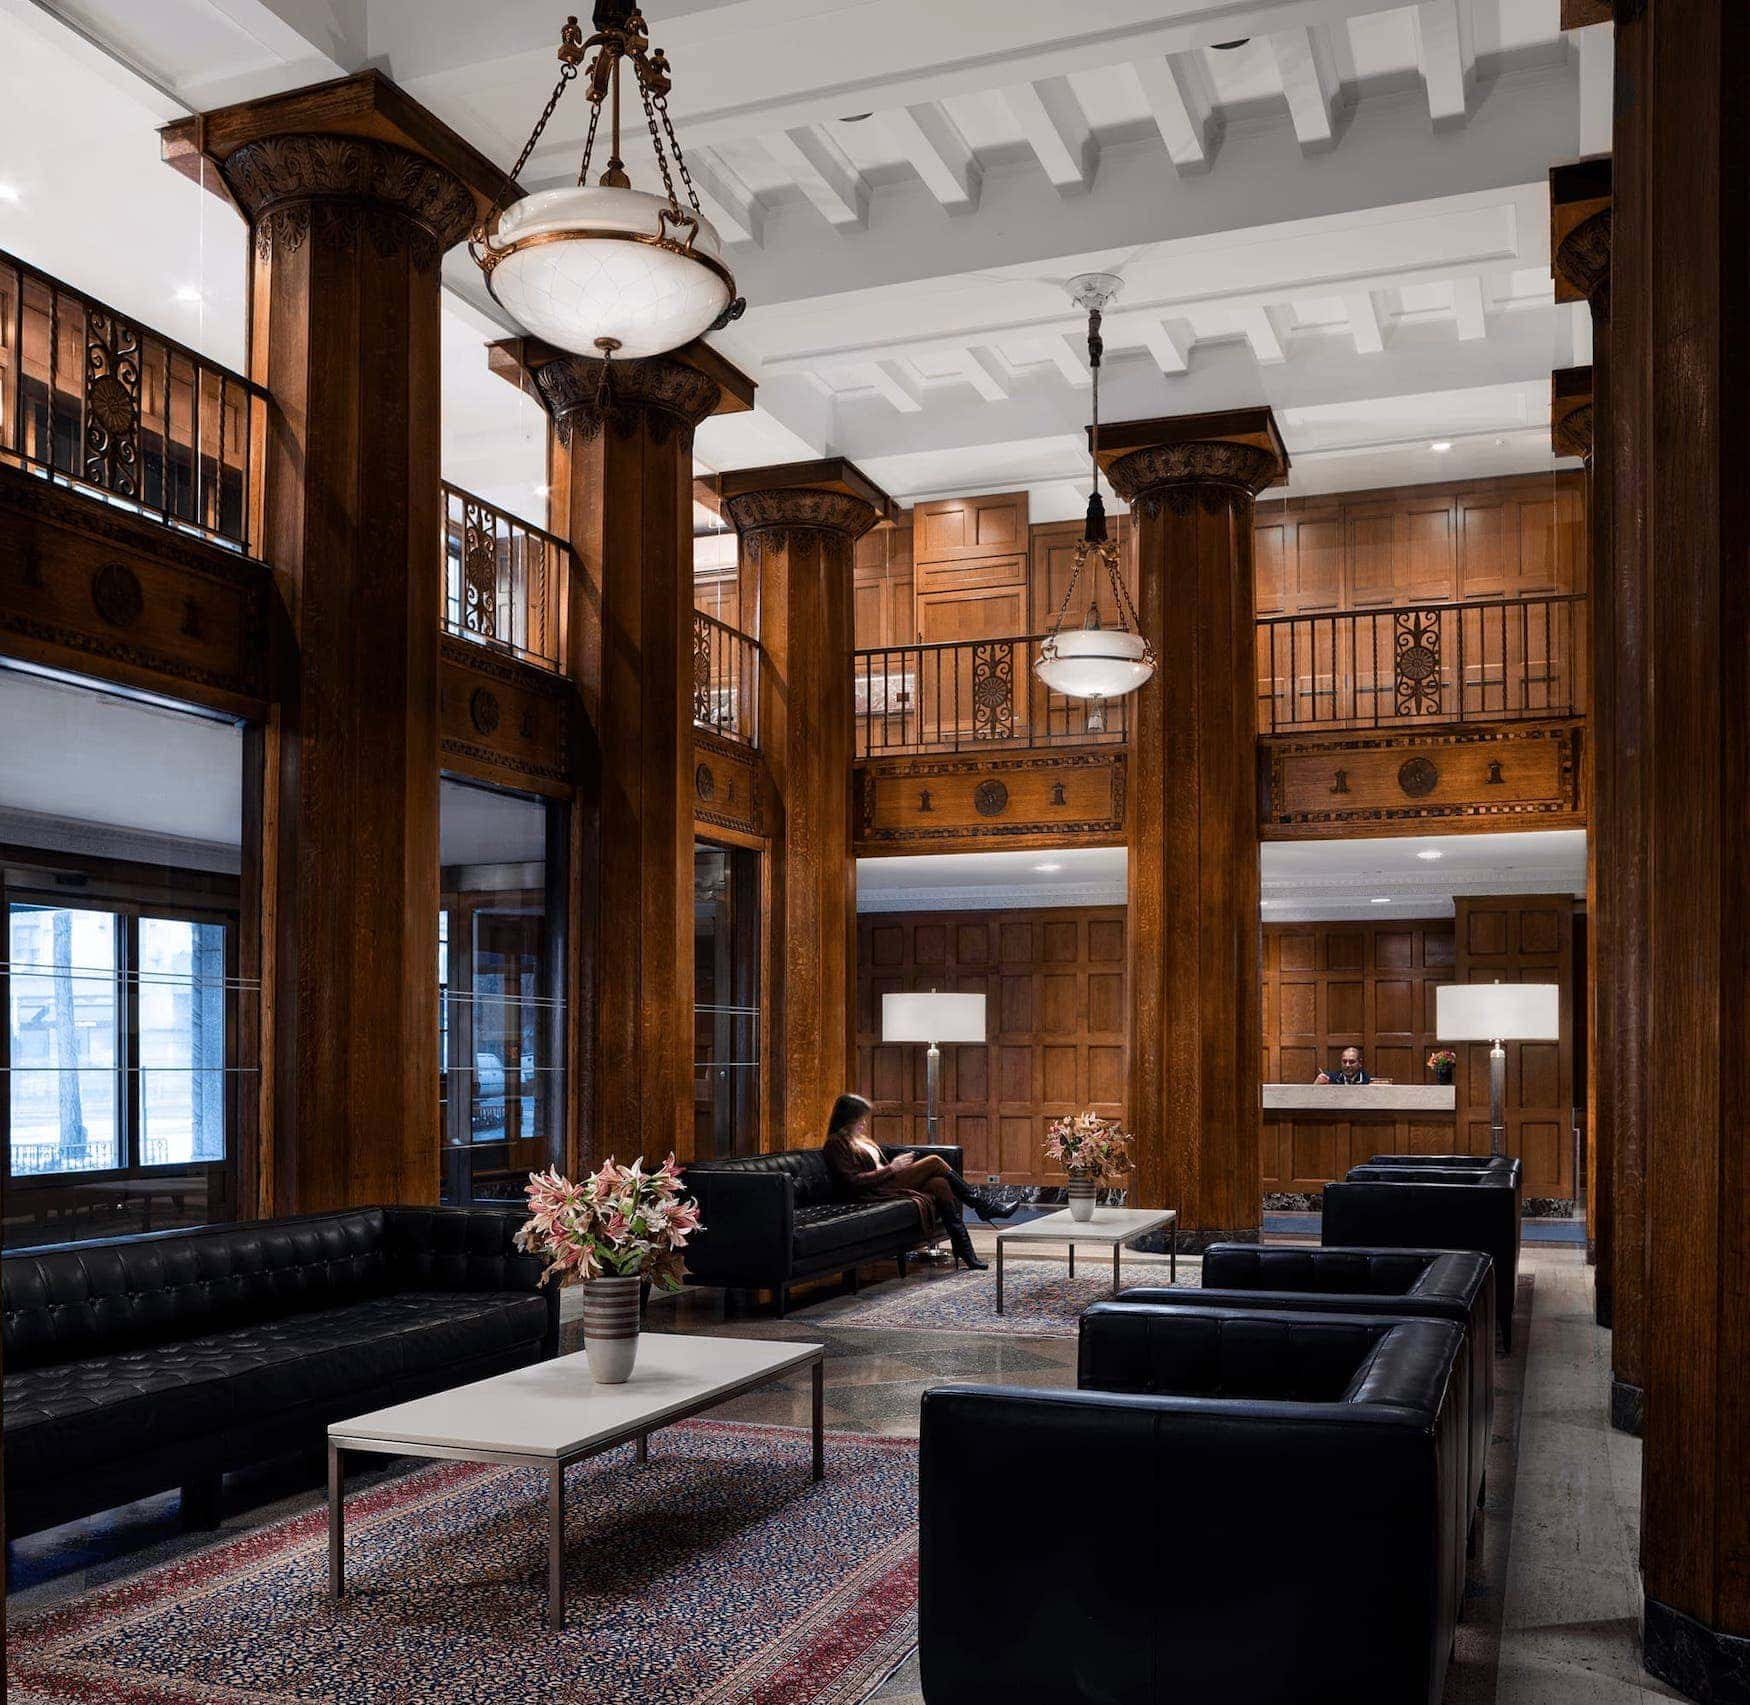 Fifth Avenue amenities with black seating, dark wood pillars, and white ceilings with exposed beams.